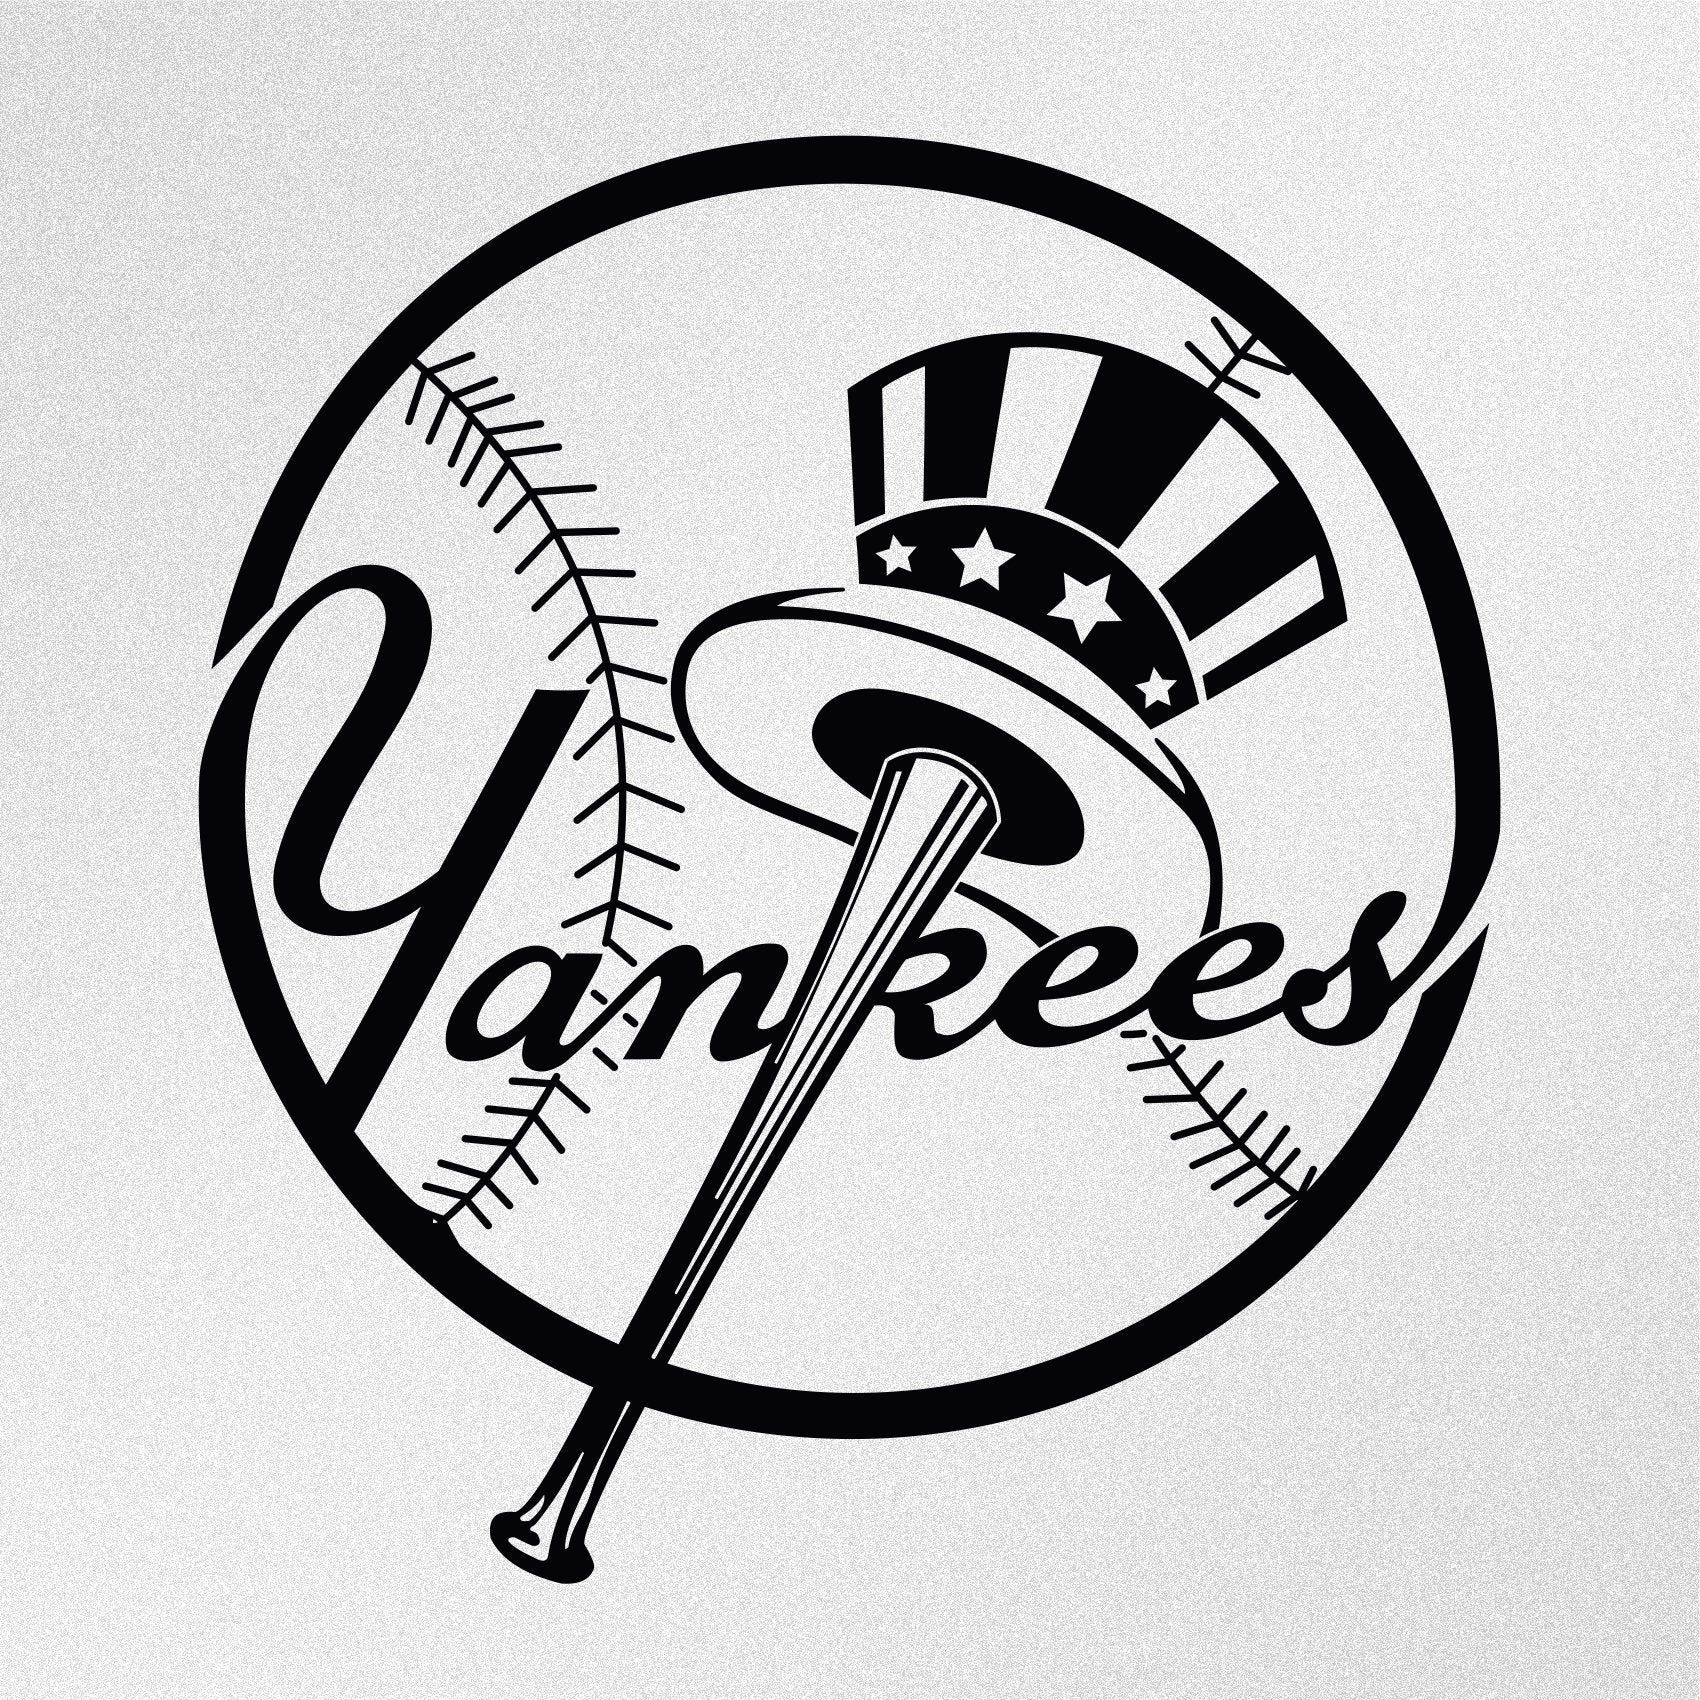 New York Yankees Logo Vinyl Decal Sticker New York Yankees Logo Yankees Logo New York Yankees